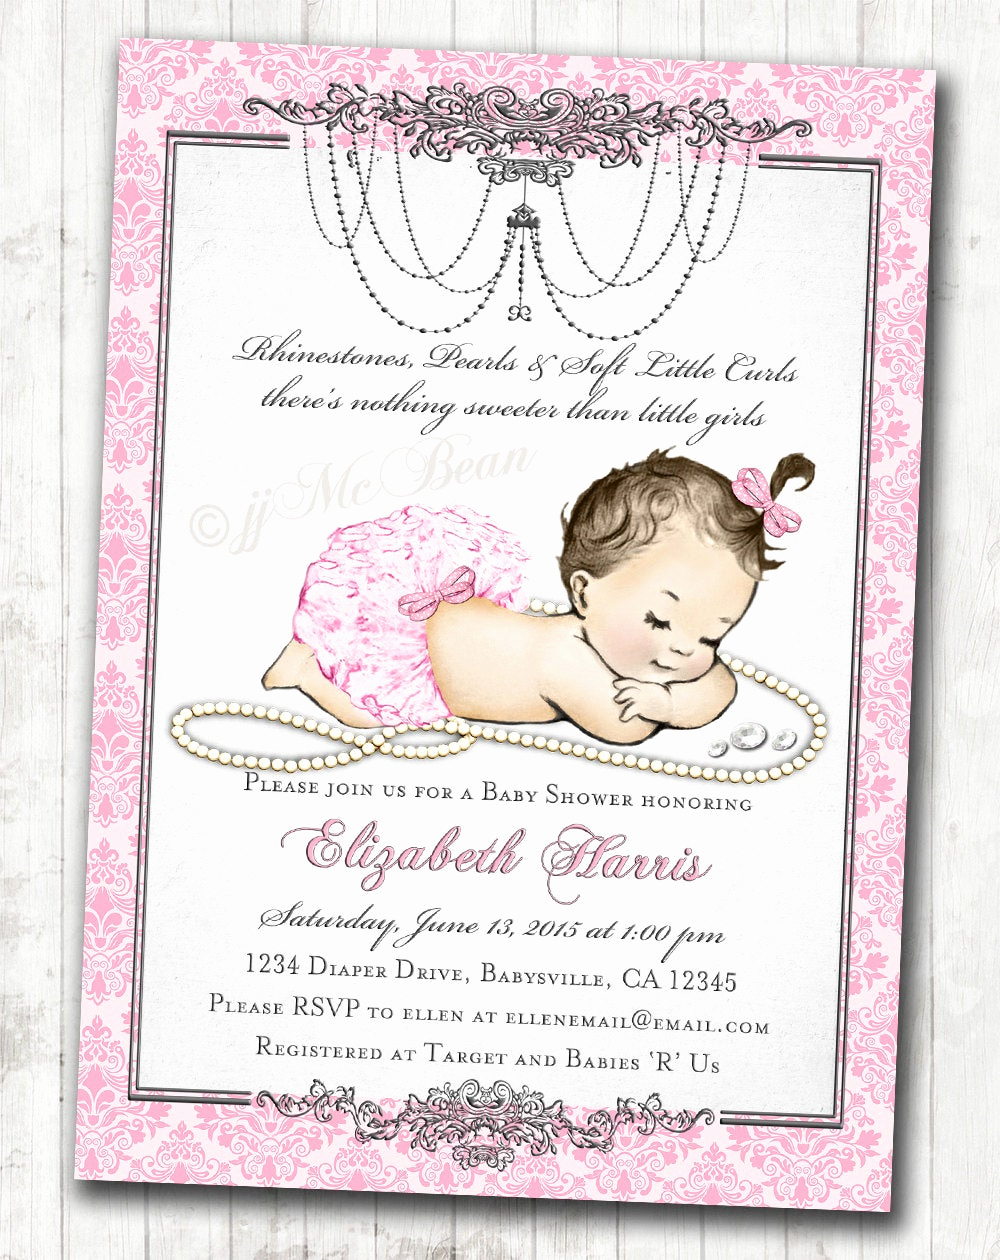 Baby Shower Invitation for Girl Luxury Girl Baby Shower Invitation for Baby Girl Pink & Silver